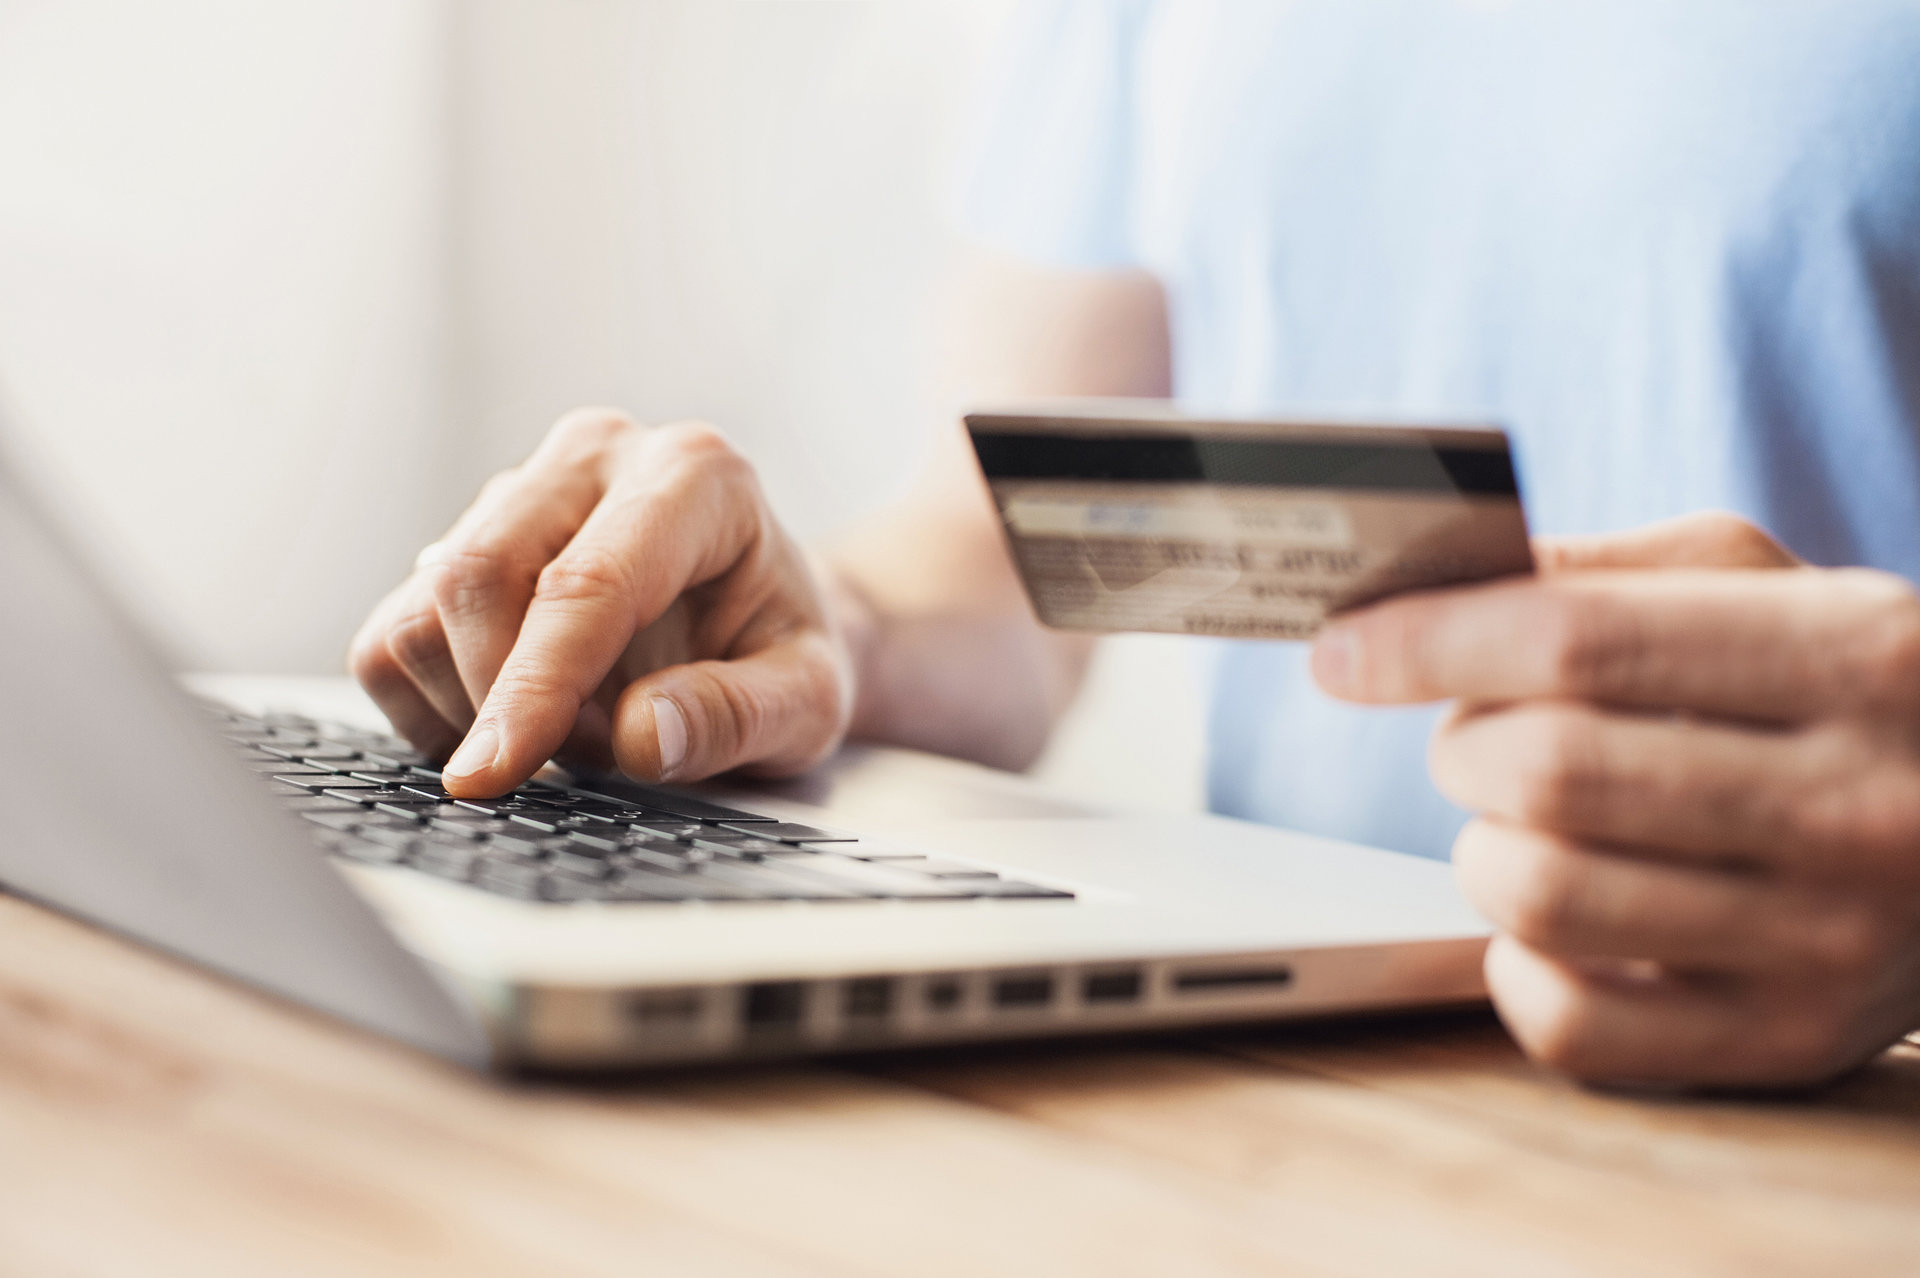 Buying online? Learn the golden rules of secure online payments